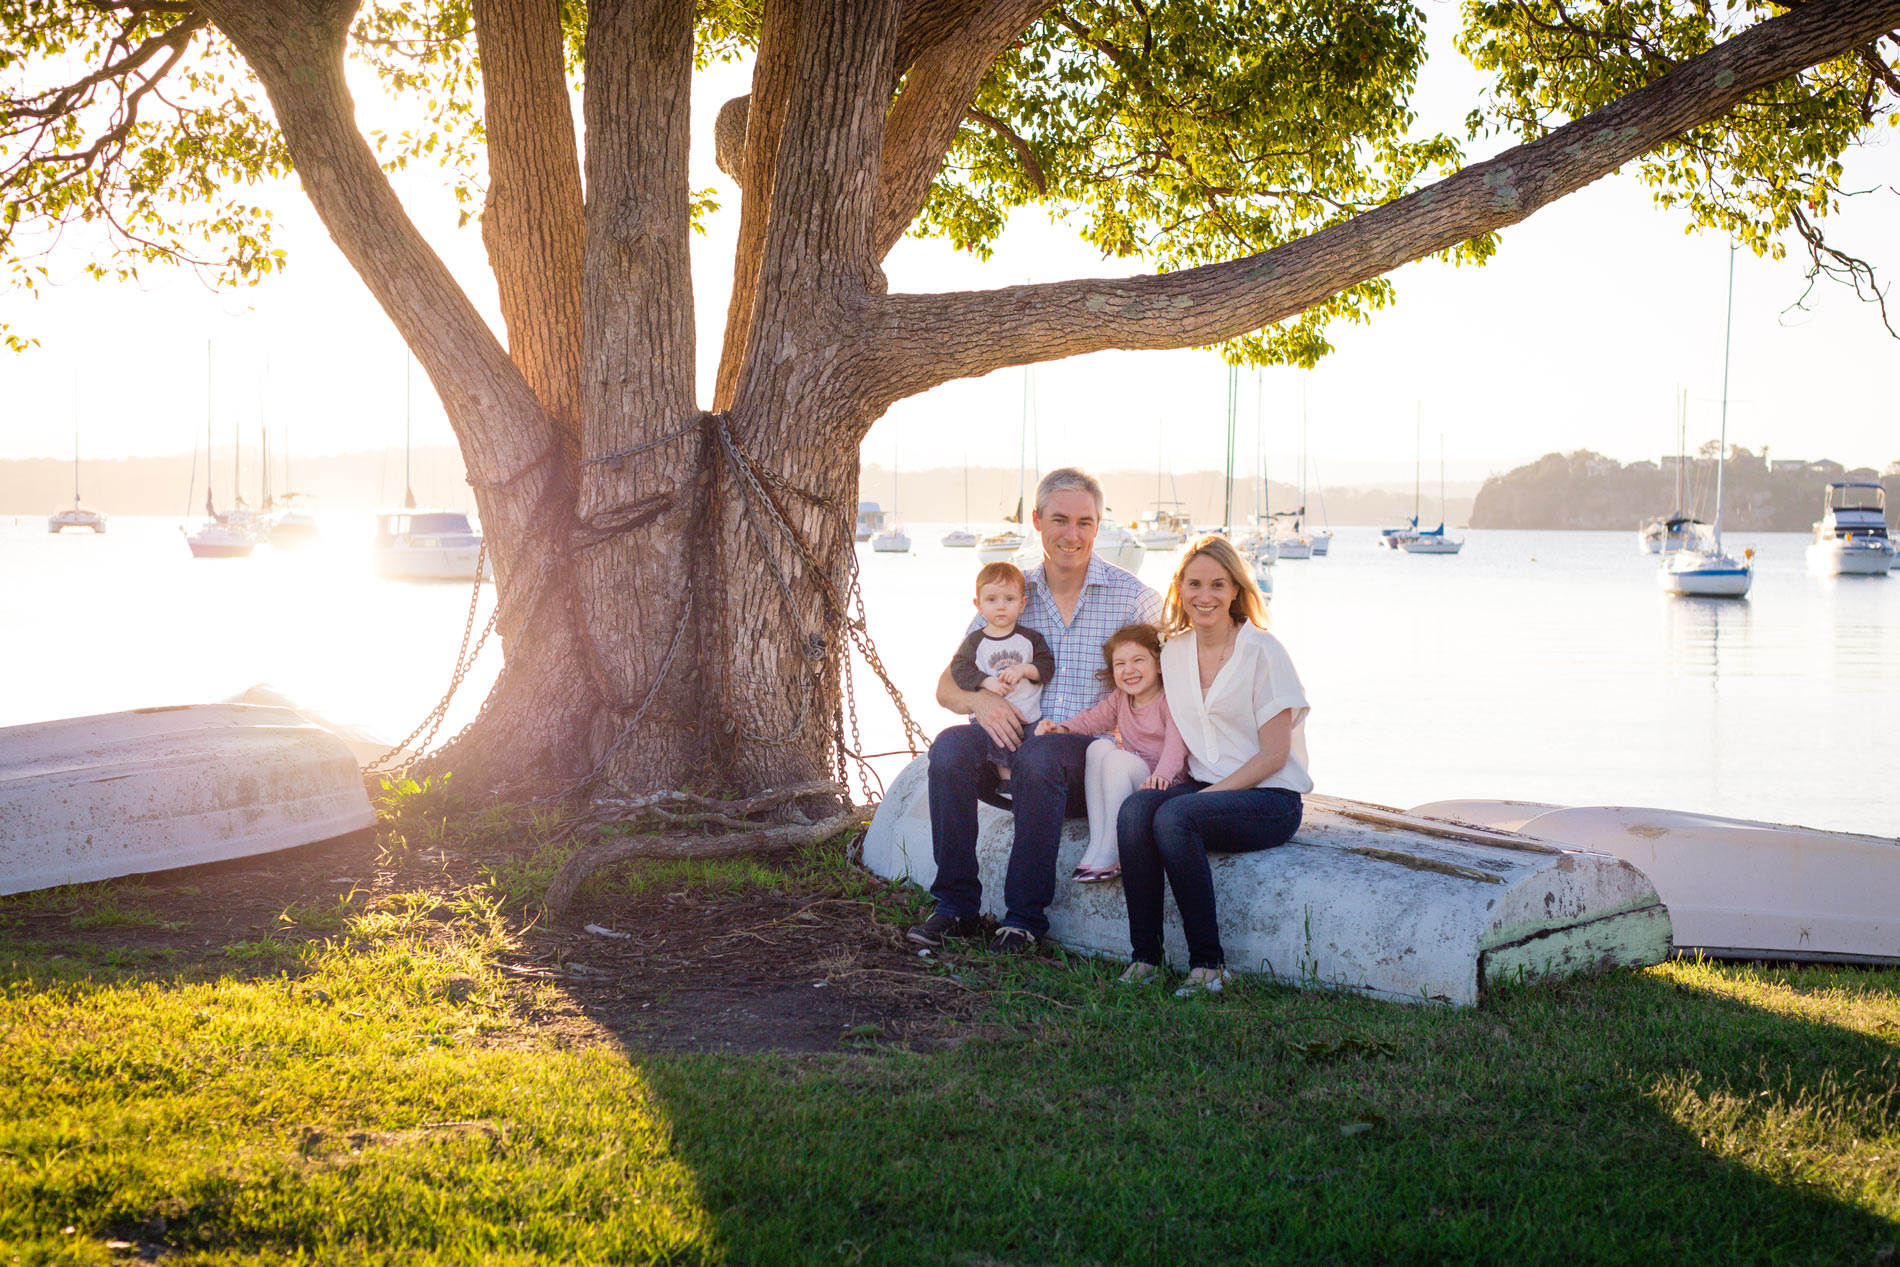 Image by Newcastle Family Photographer Little Magnolia